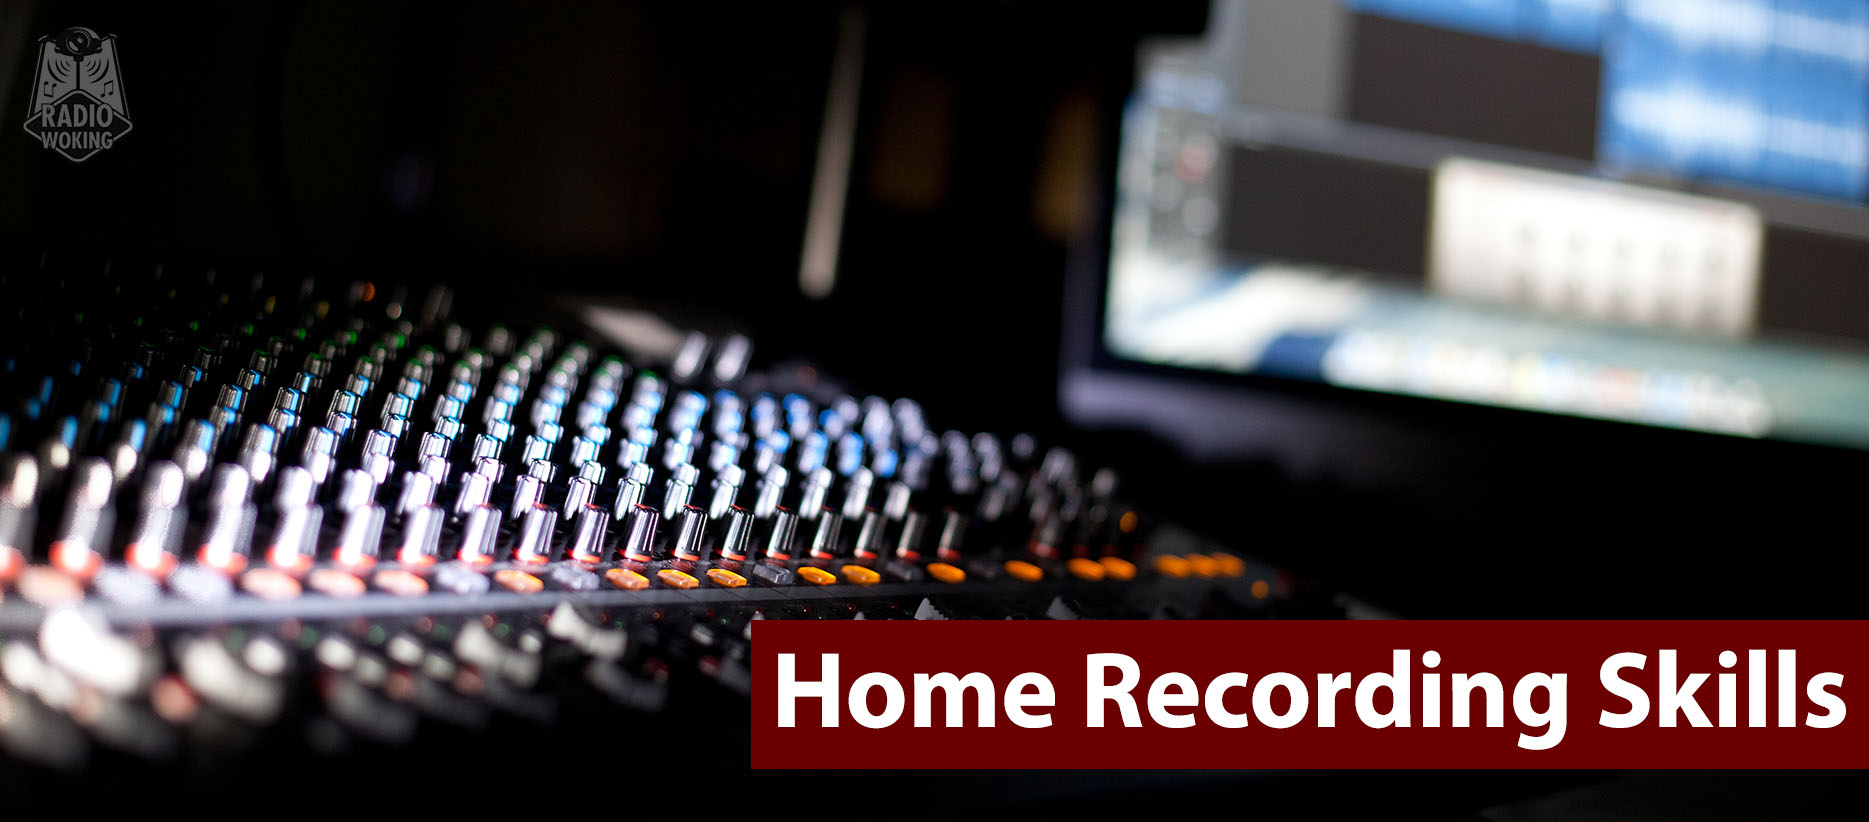 Home Recording Skills Banner